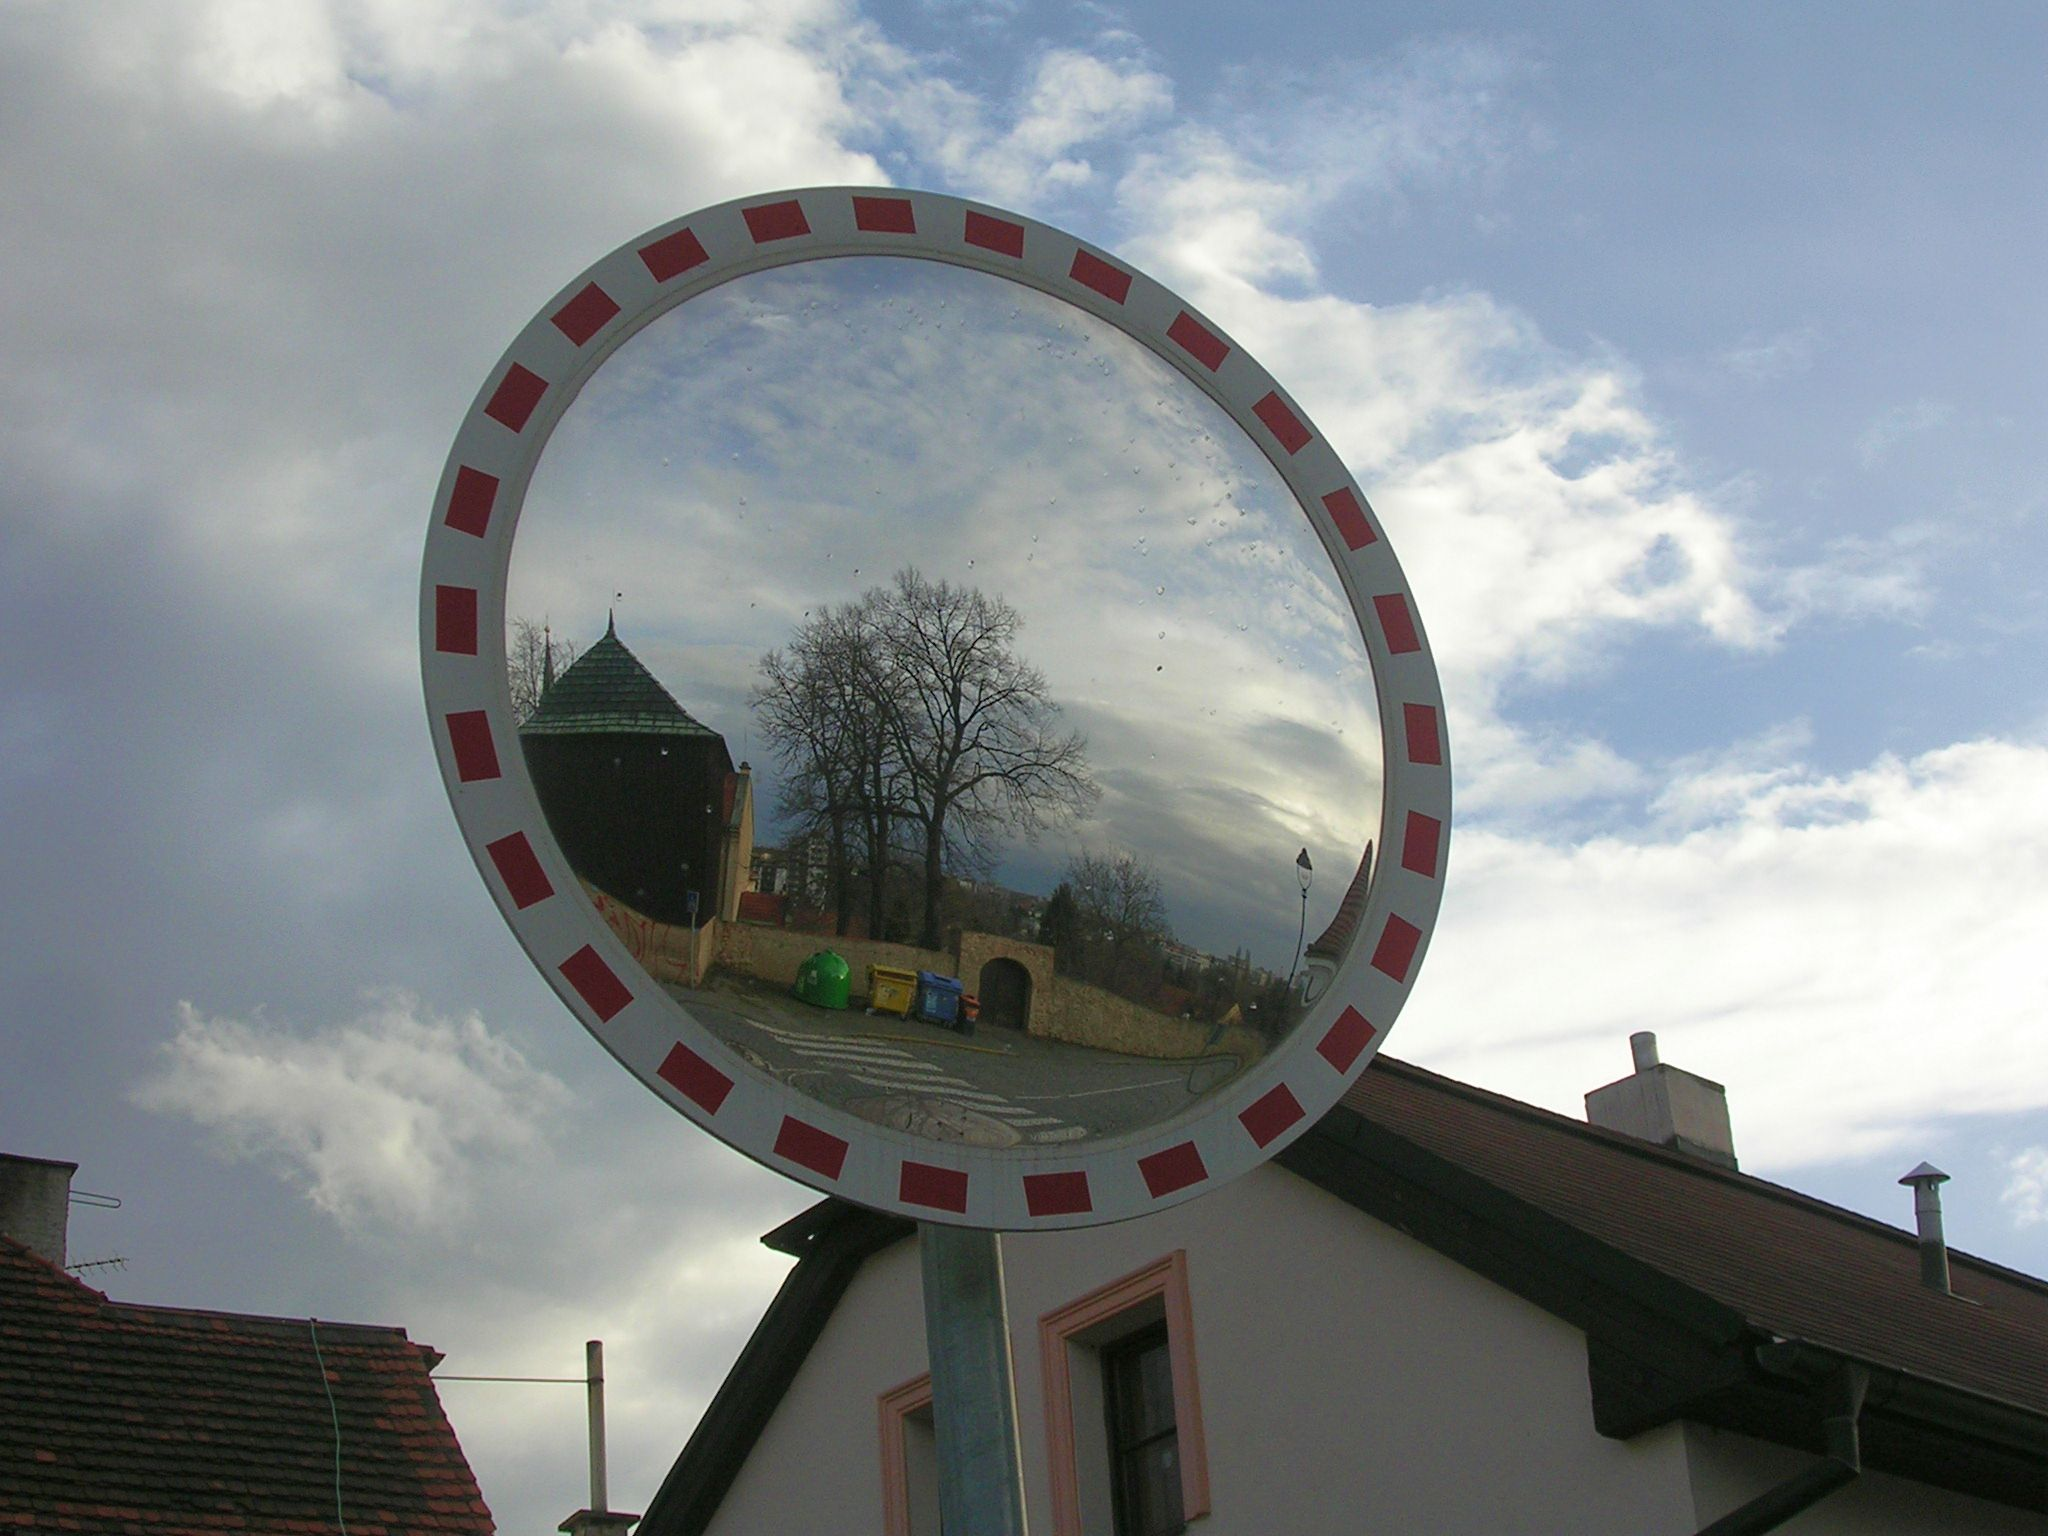 Mirroring a landscape